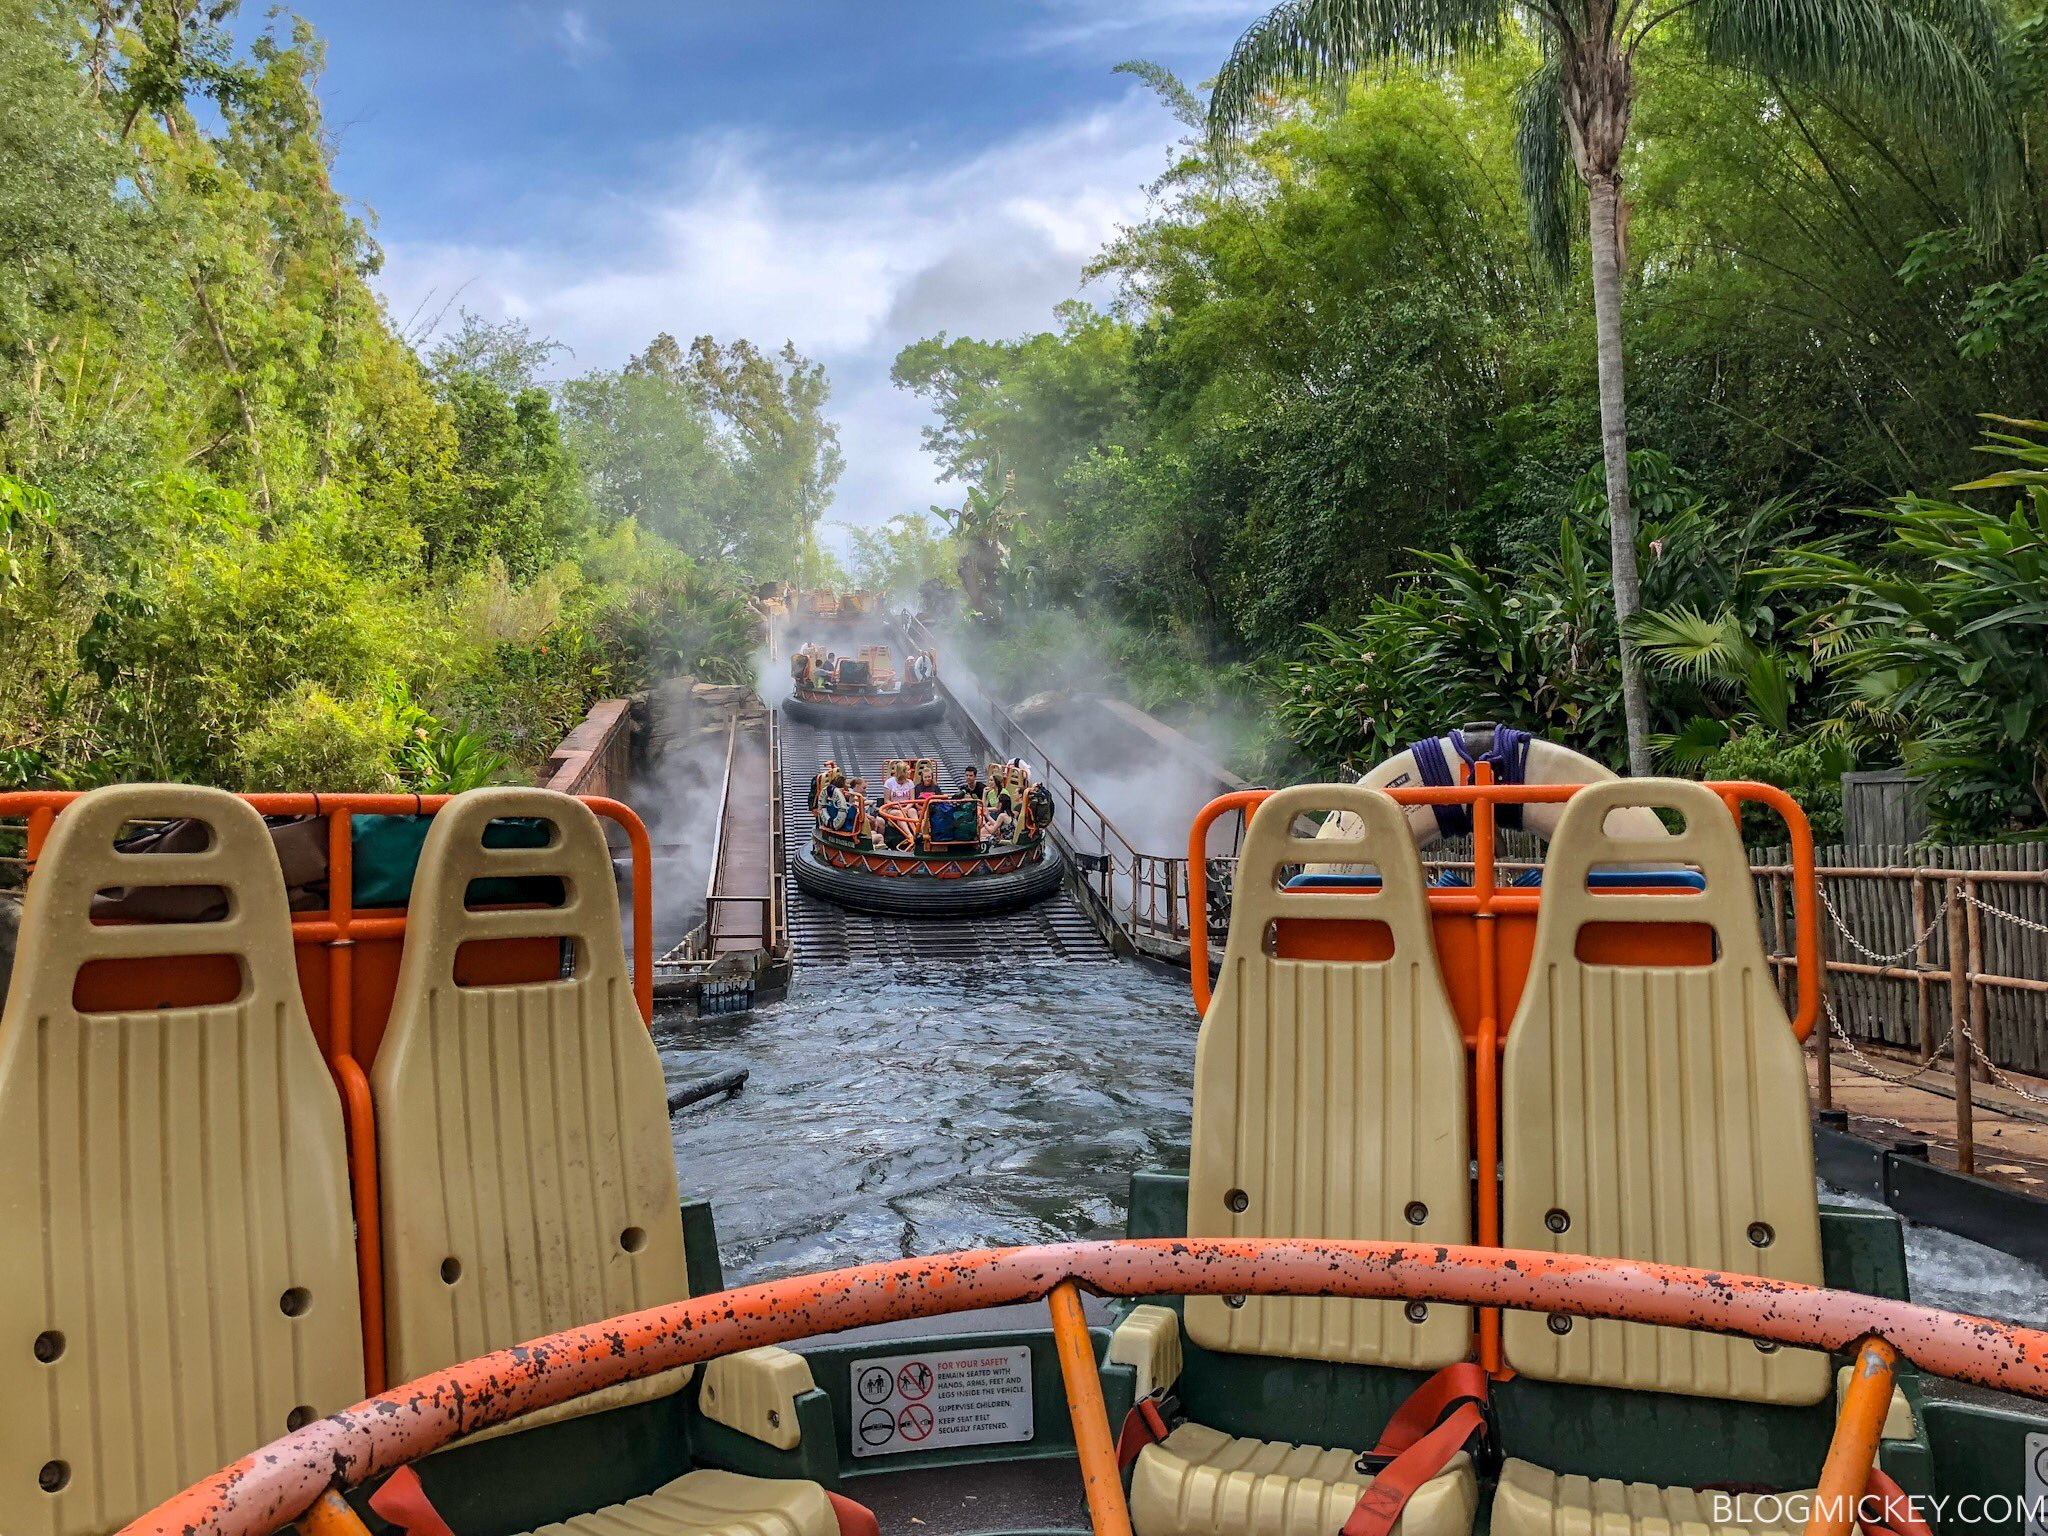 Kali River Rapids ride at Disney's Animal Kingdom